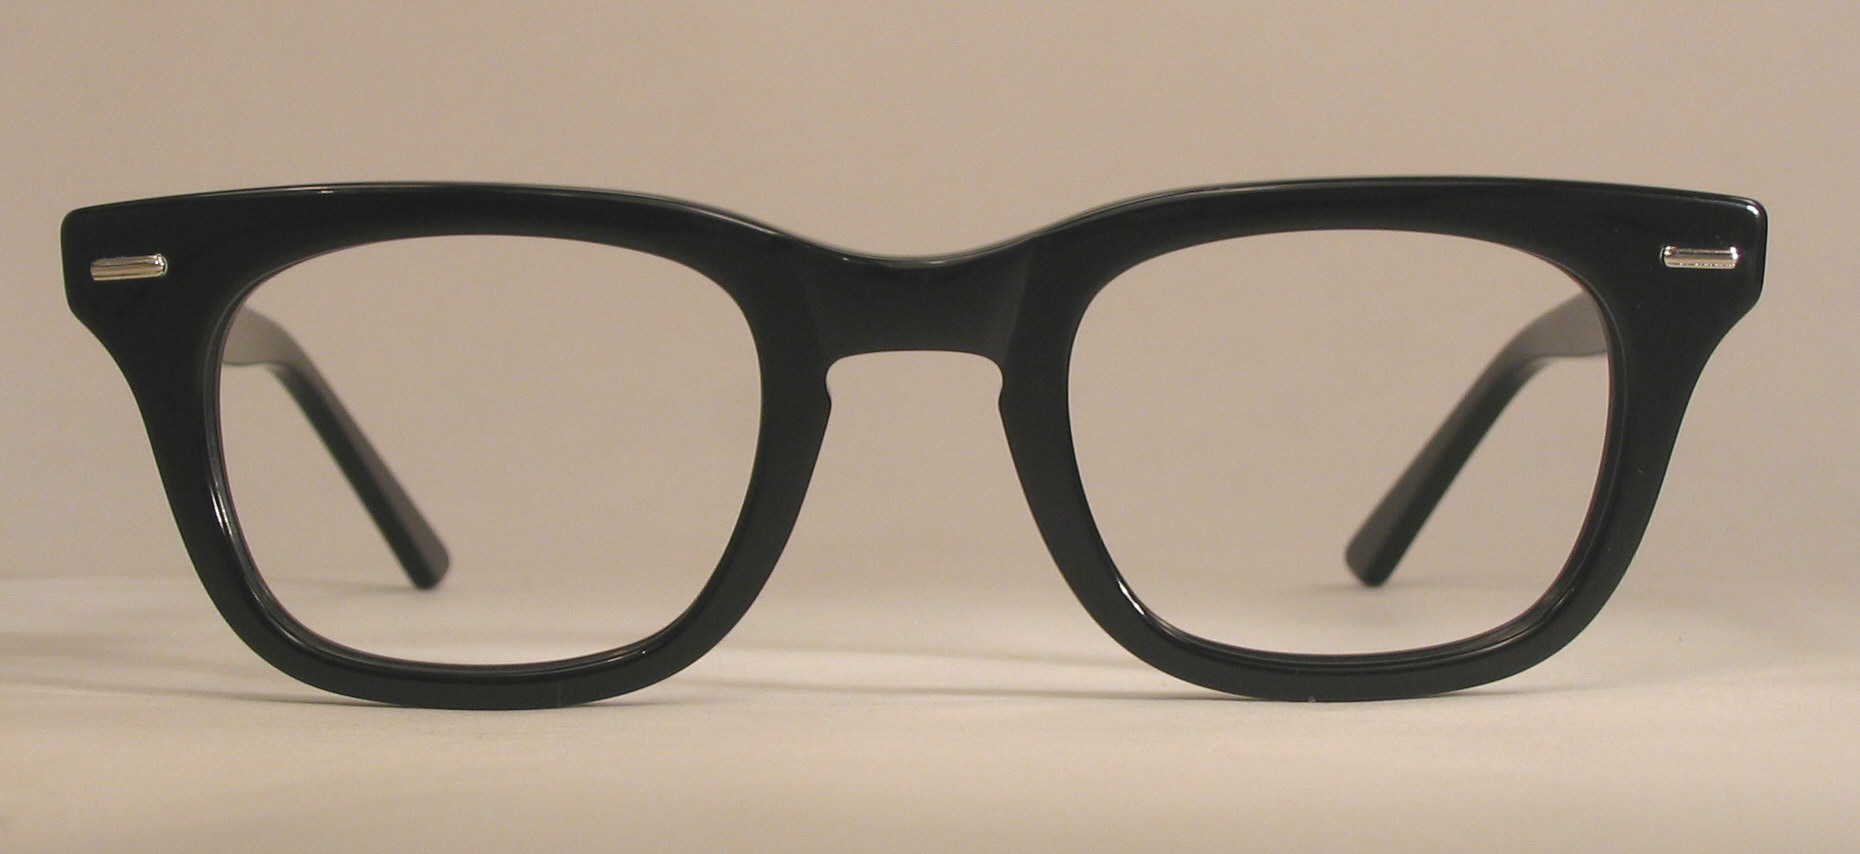 Optometrist Attic - SHURON FREEWAY BLACK CLASSIC EYEGLASS FRAMES